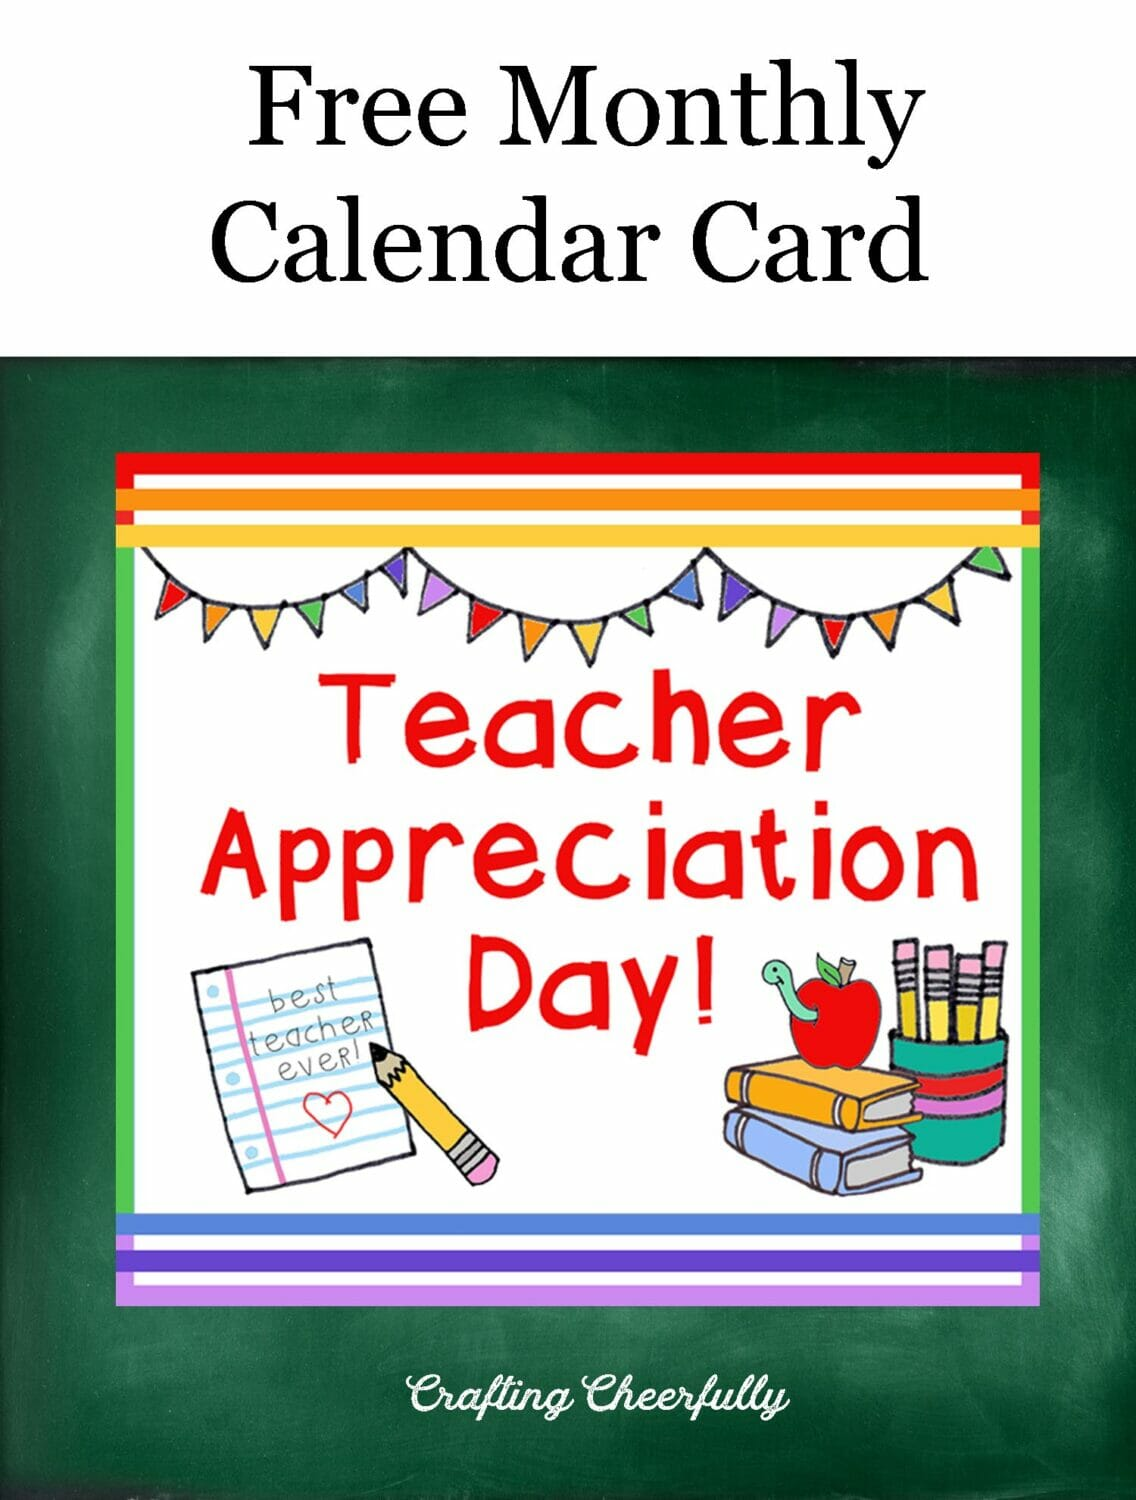 Free Monthly Calendar Card Teacher Appreciation Day